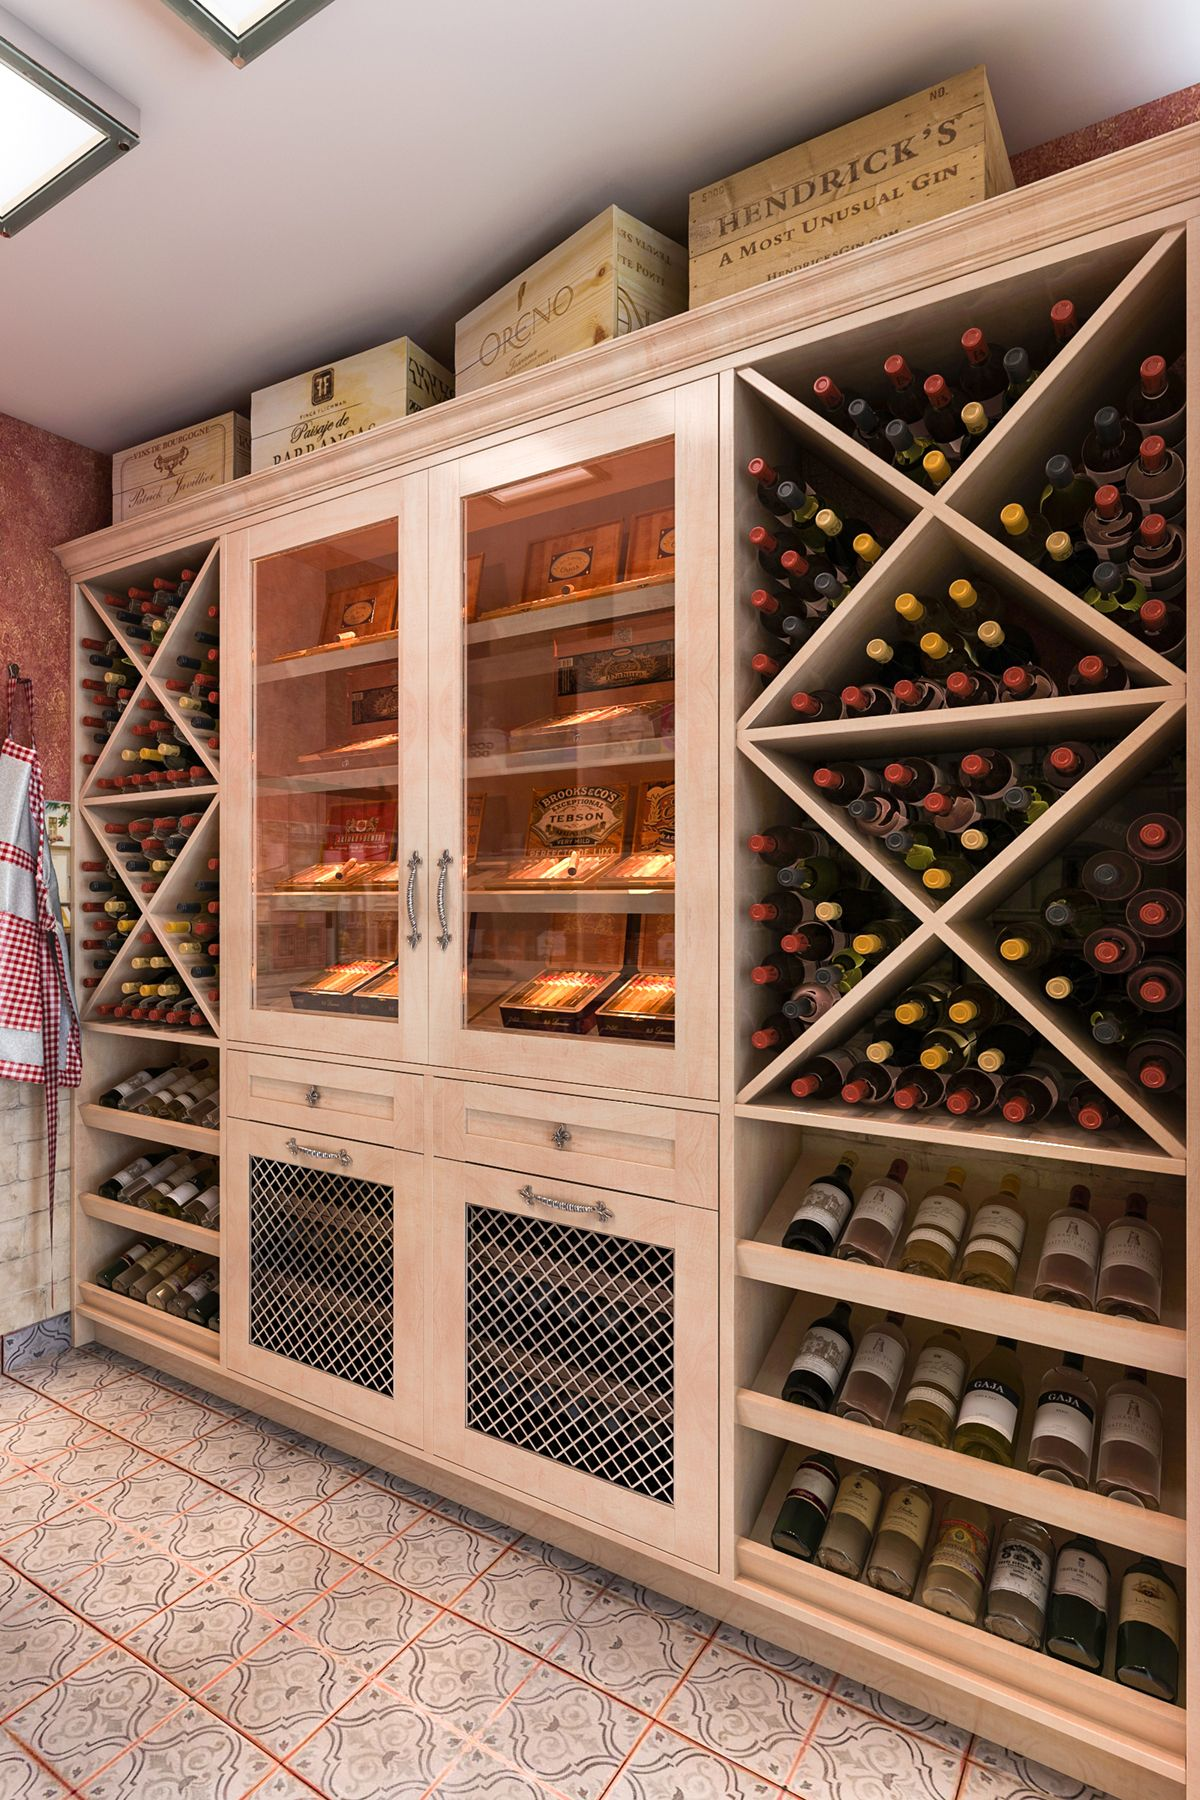 This bination of maple wood and melamine features wine storage in